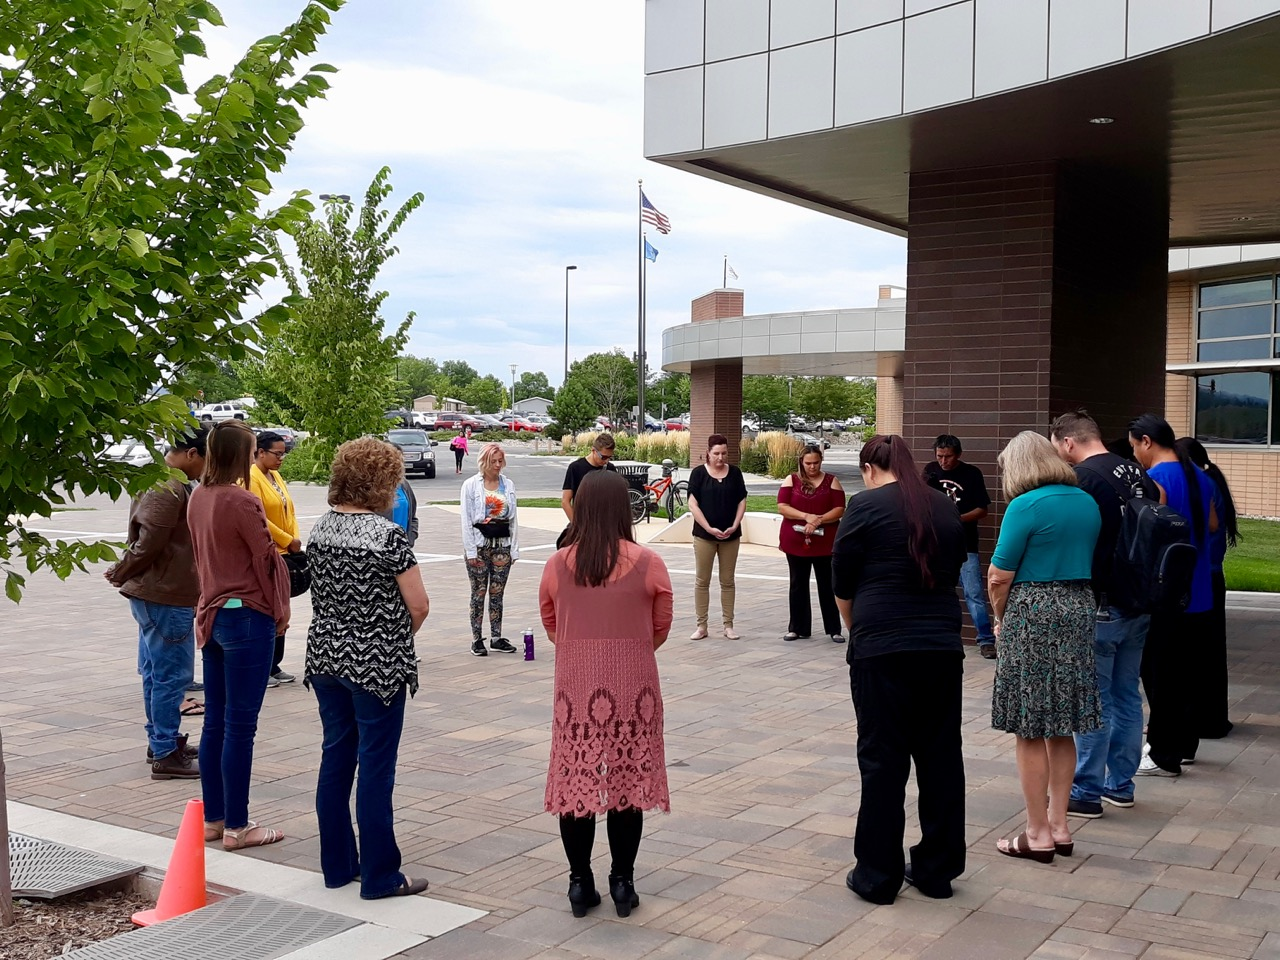 Prayer circle welcomes students back to campus